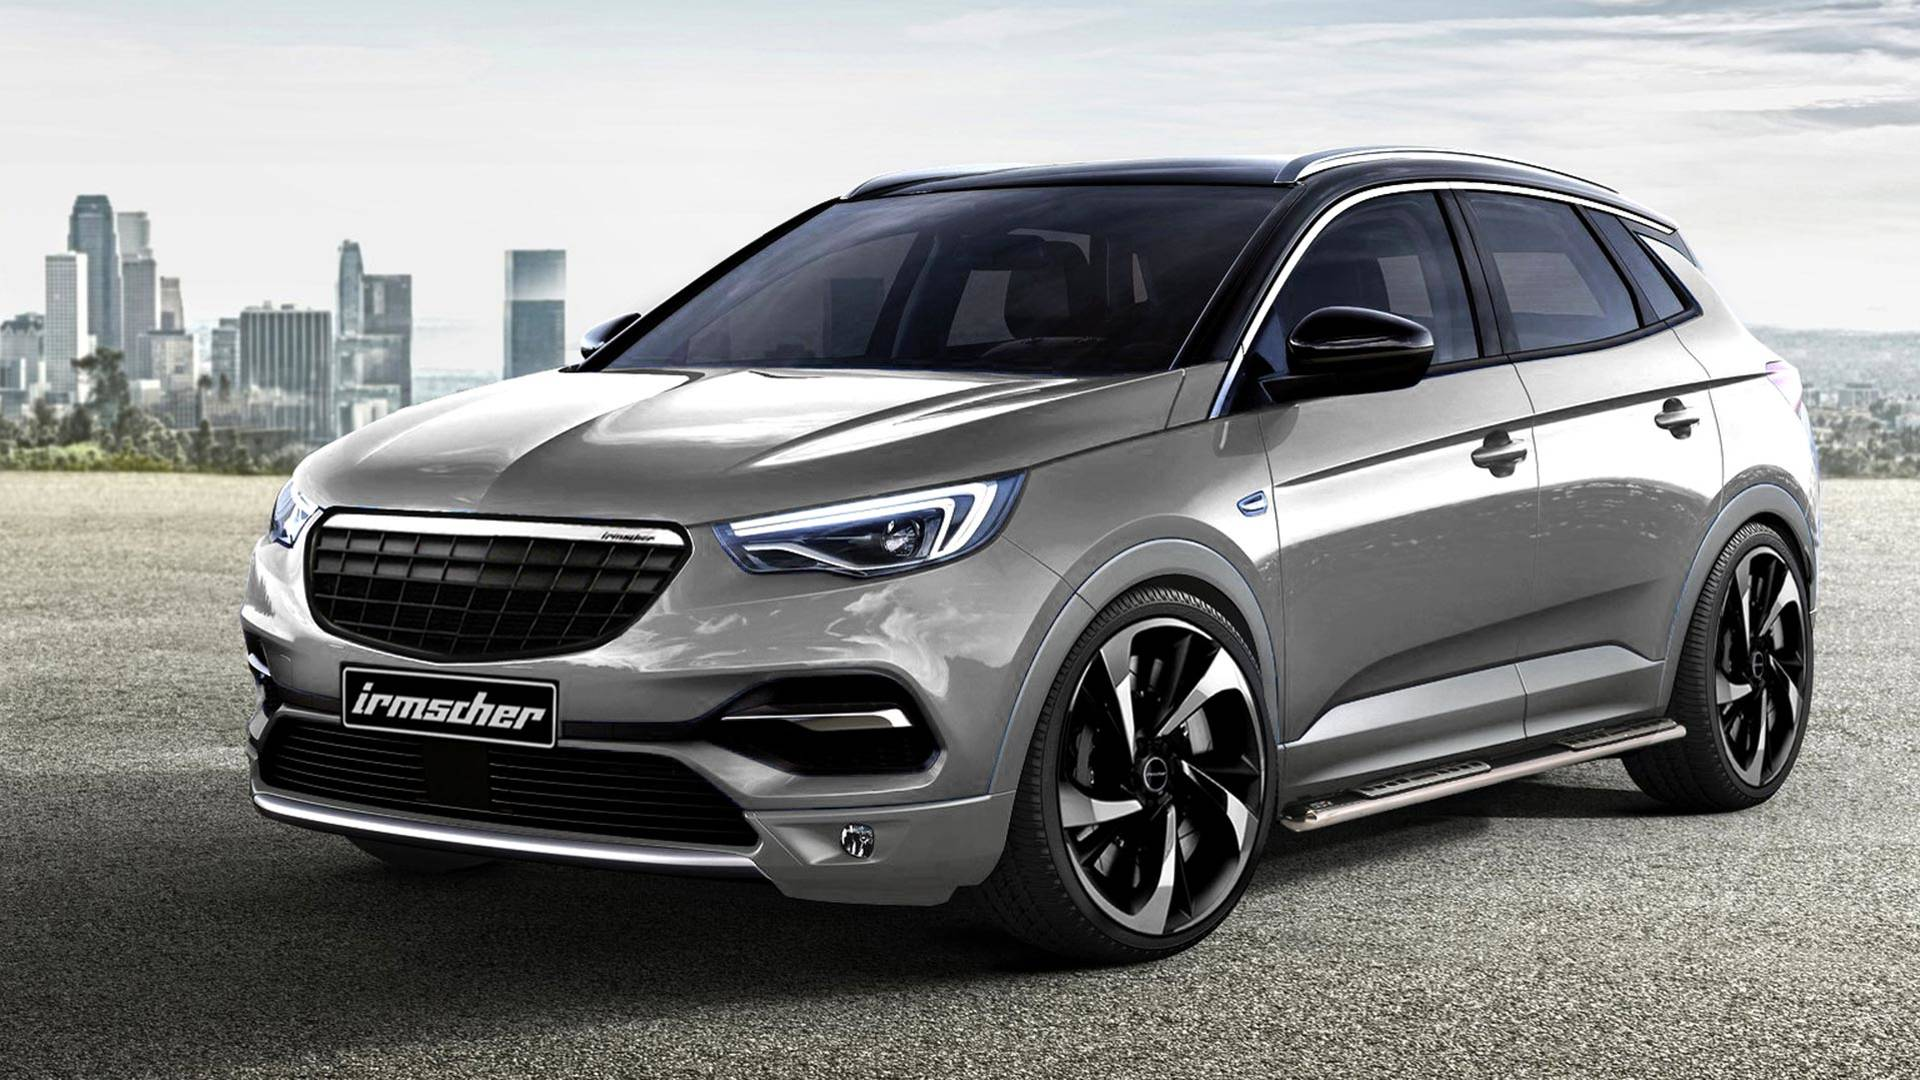 2018 Opel Grandland X Gets The Tuning Treatment From